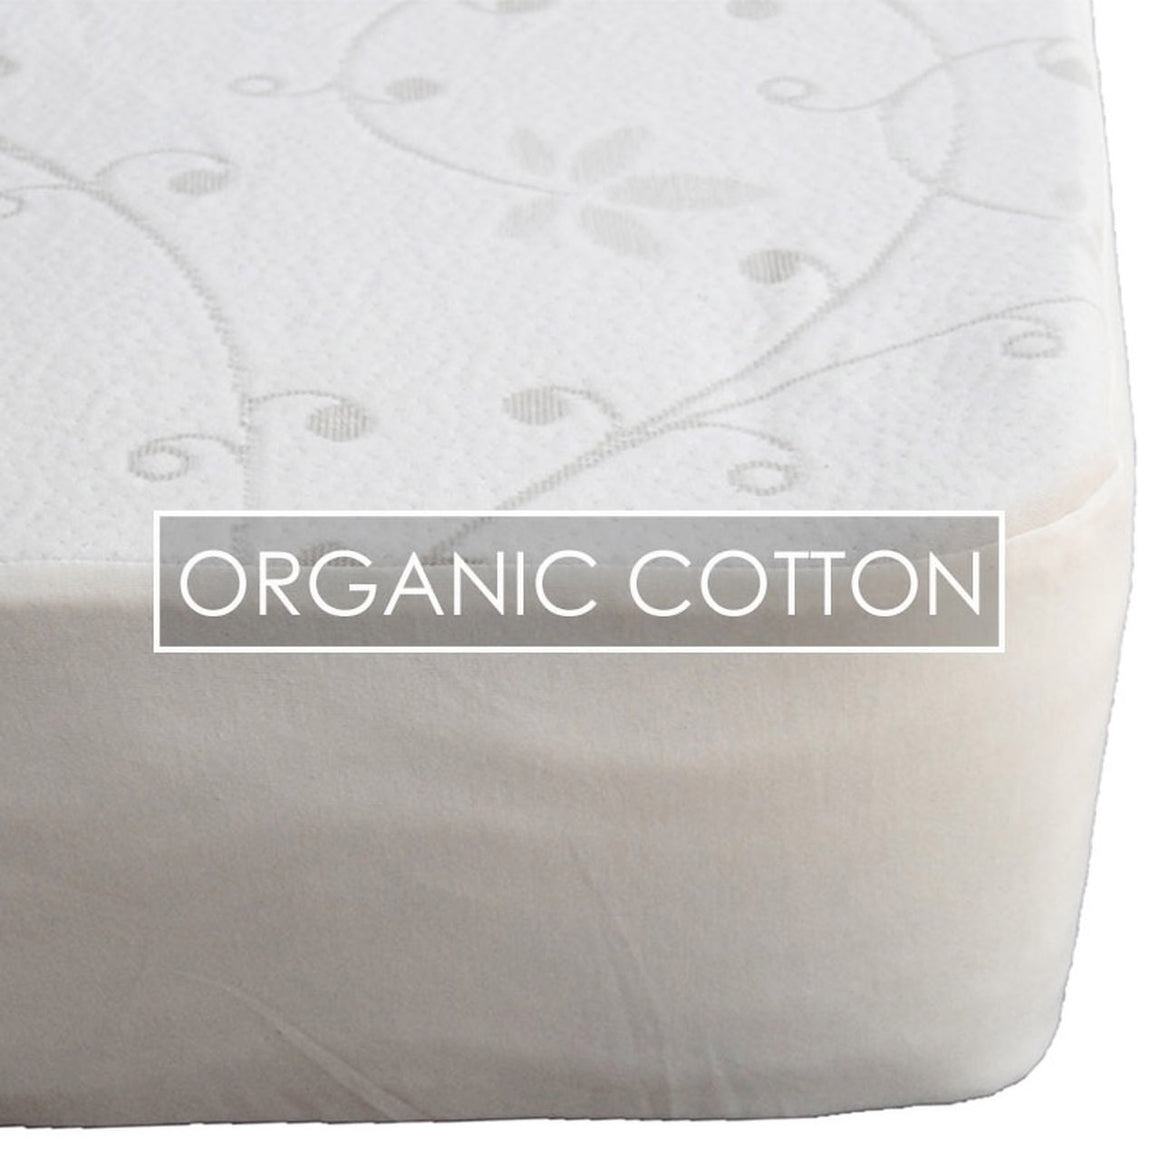 Suite Sleep Organic Cotton Knit Mattress Pad - Fitted